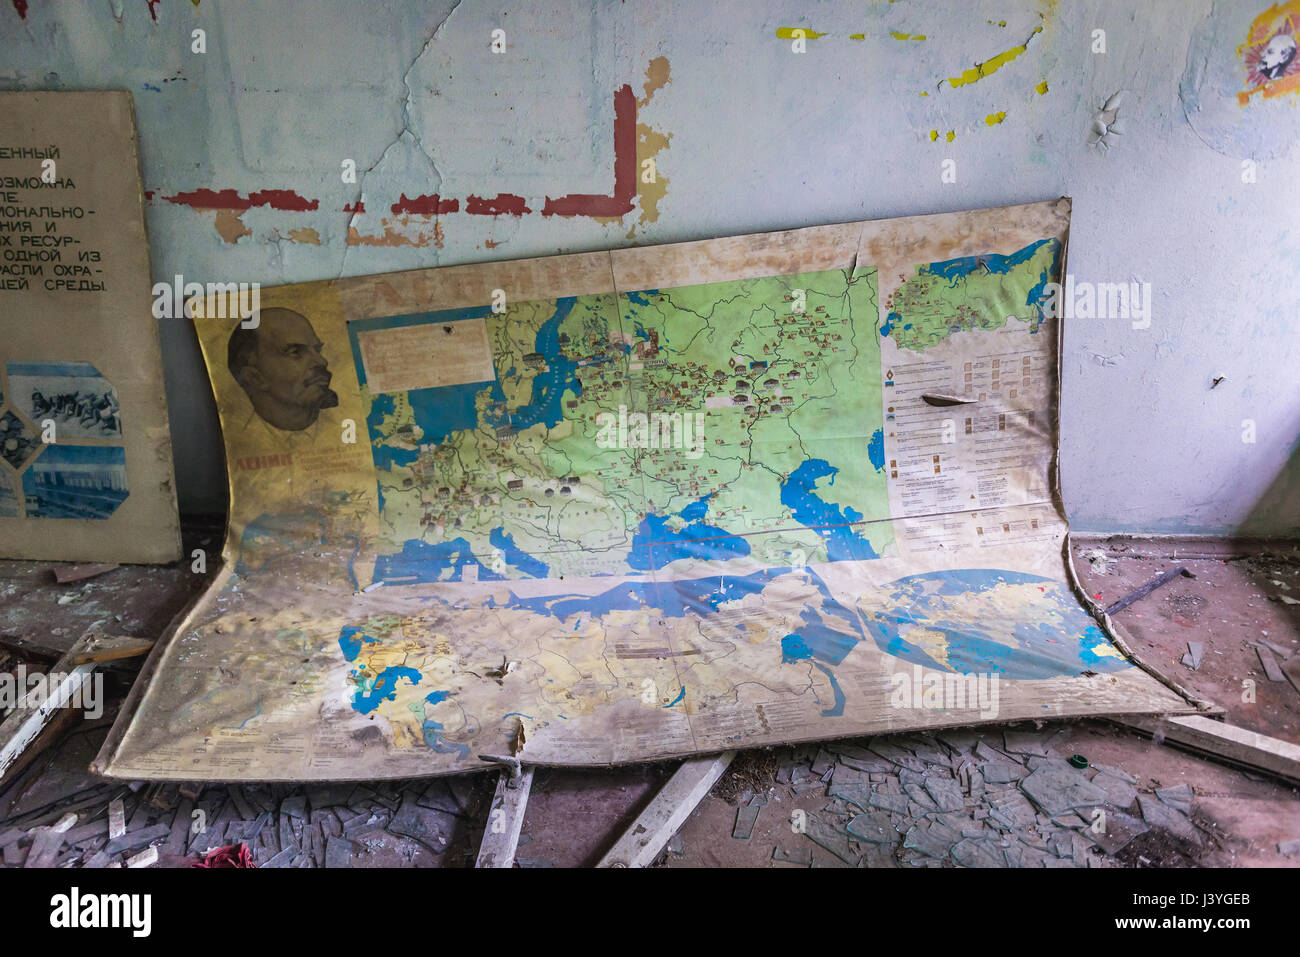 Pripyat Karte.Town Map Zone Stock Photos Town Map Zone Stock Images Alamy